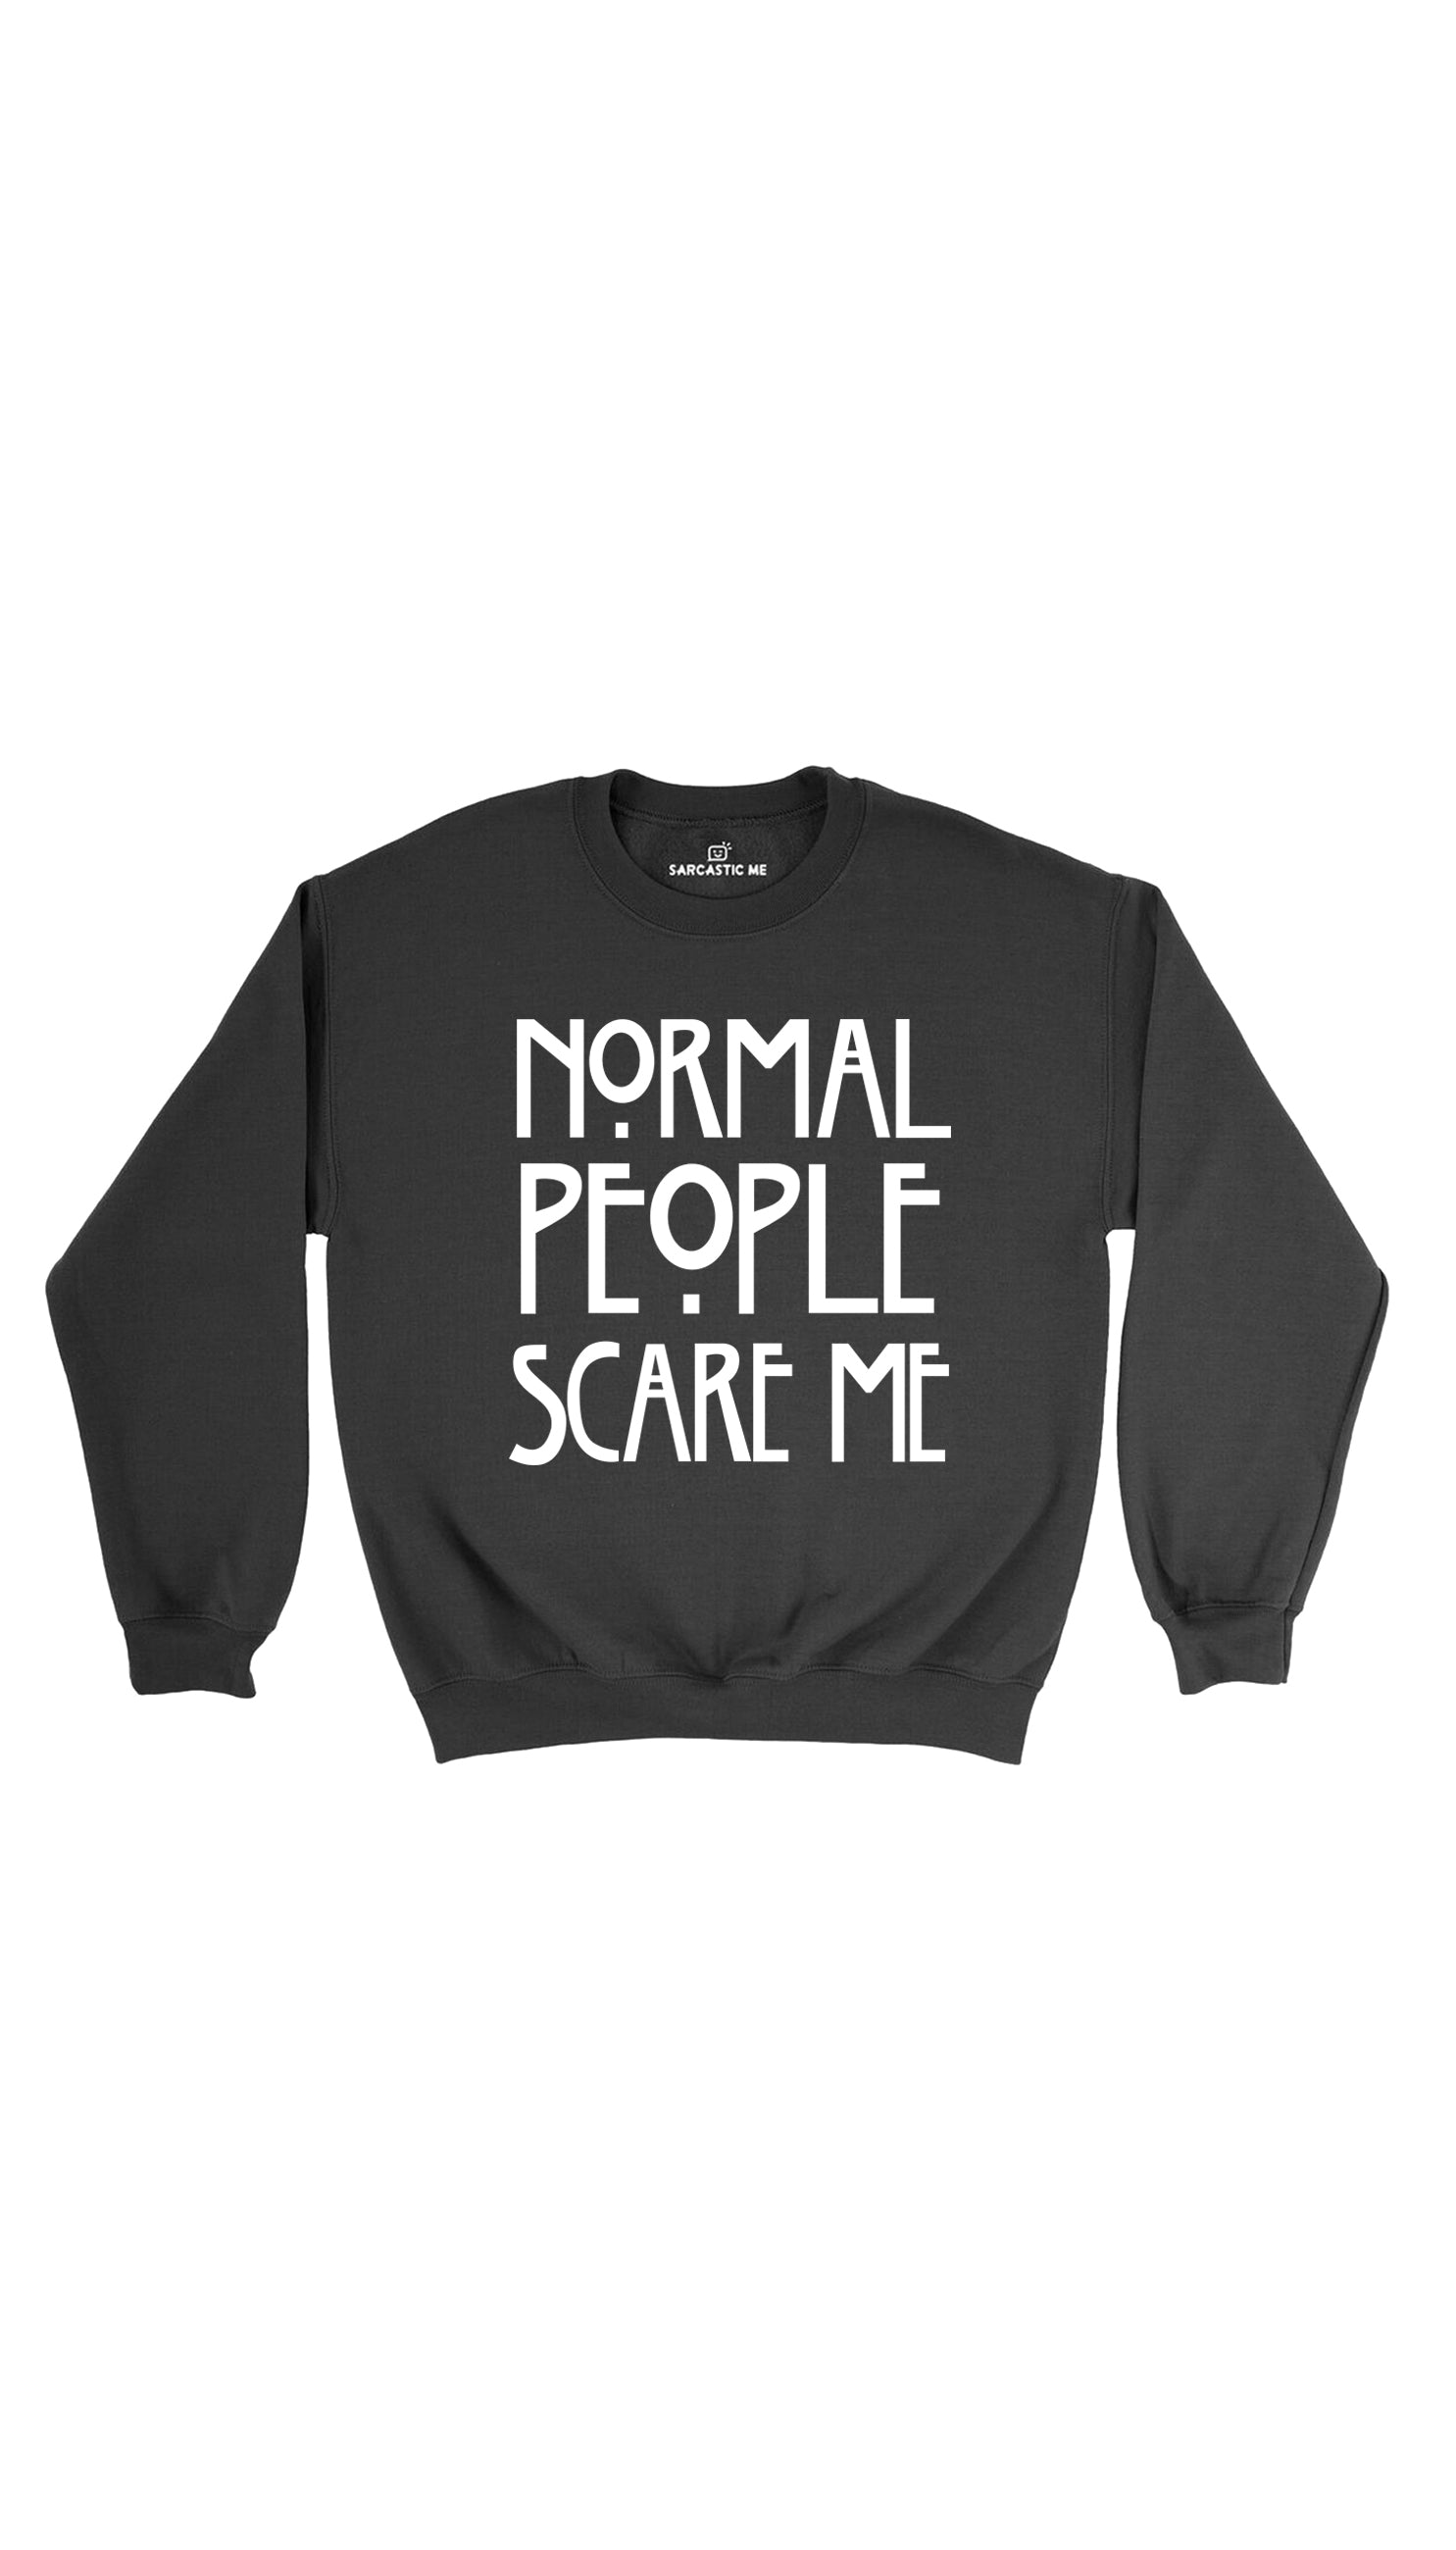 Normal People Scare Me Black Unisex Pullover Sweatshirt | Sarcastic Me